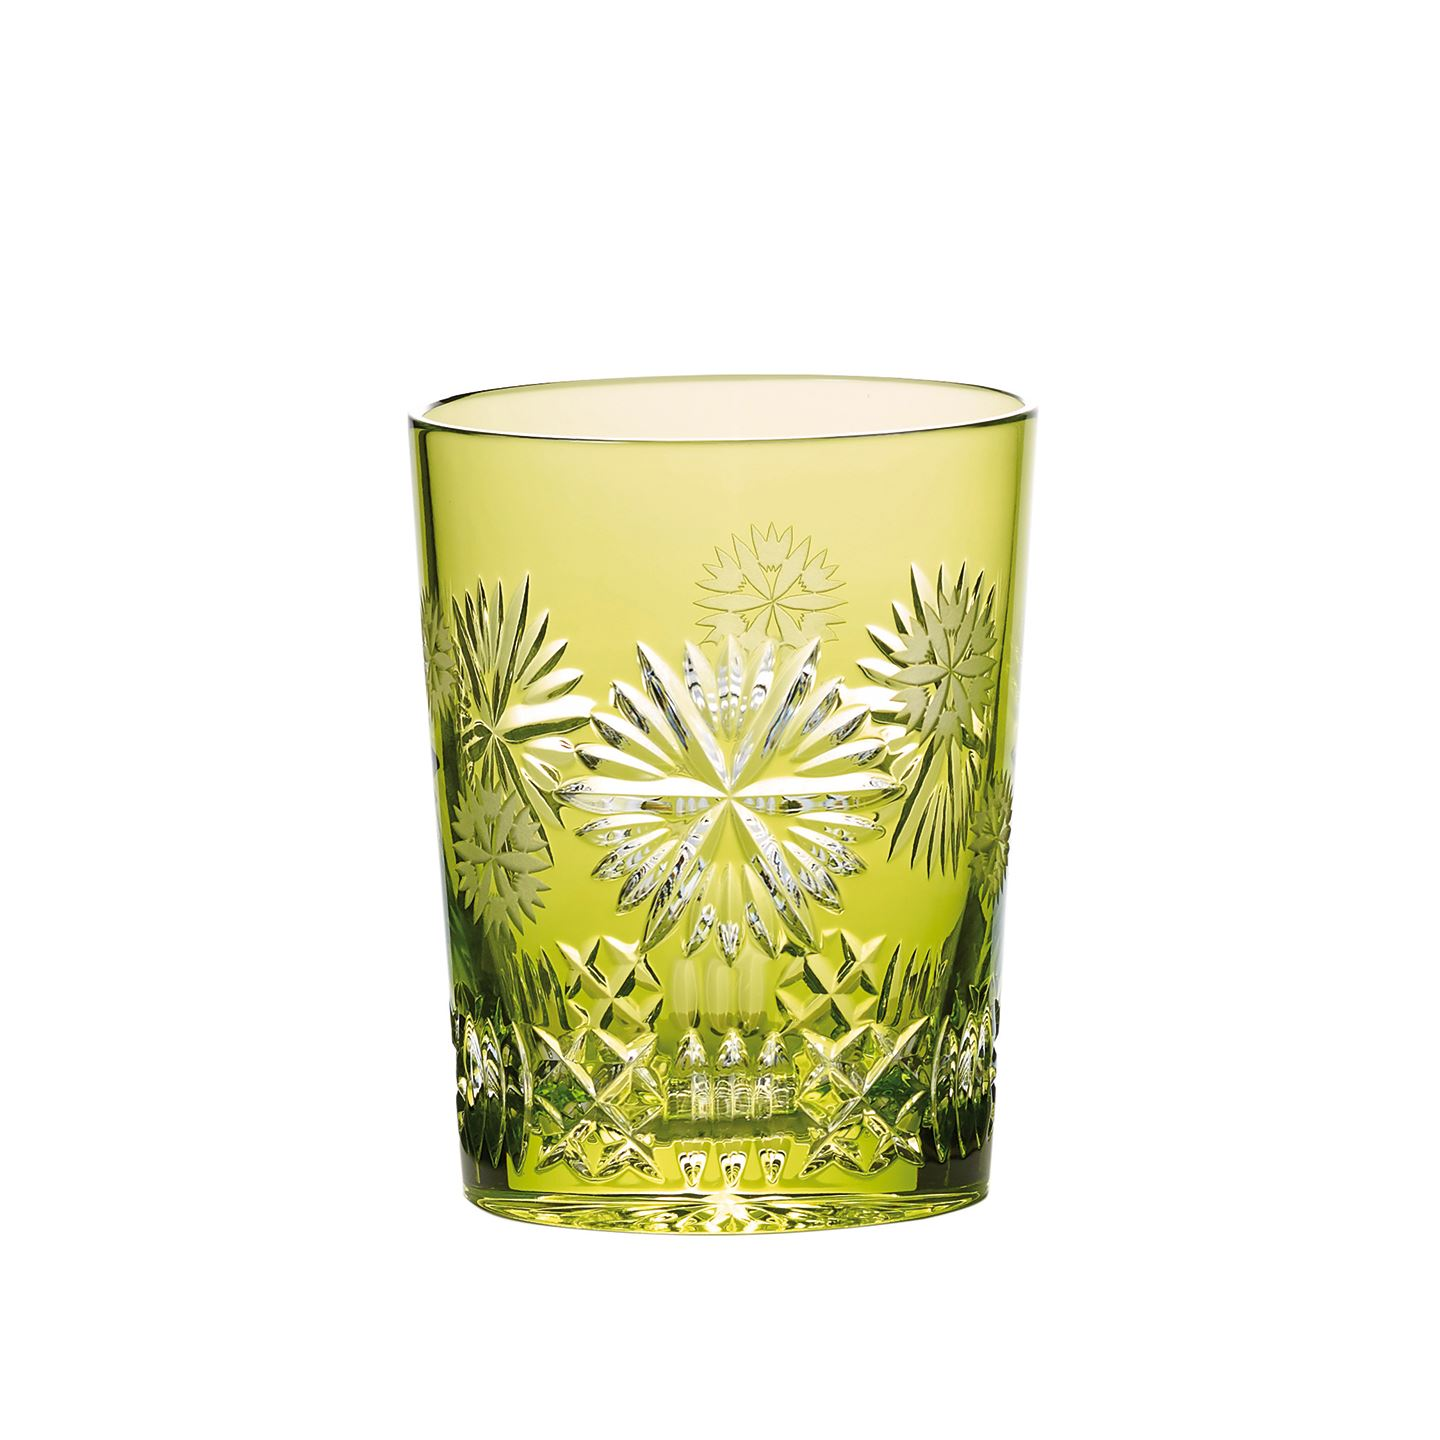 Waterford 2019 Snowflake Wishes Prosperity Prestige Edition Double Old Fashioned Lime Tumbler